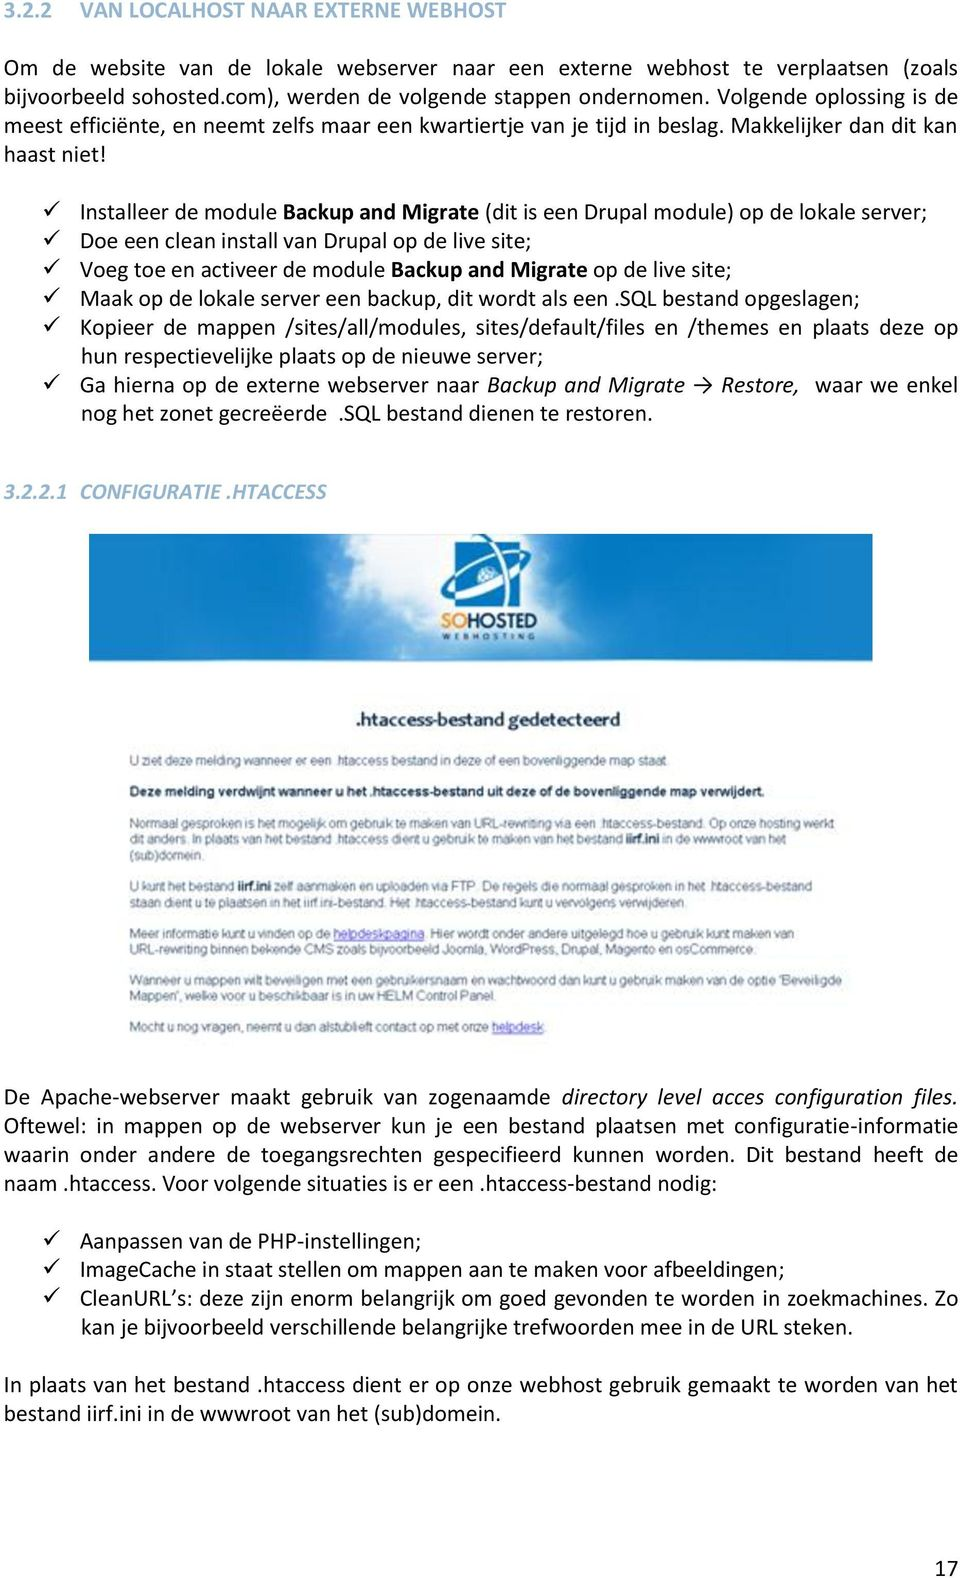 Installeer de module Backup and Migrate (dit is een Drupal module) op de lokale server; Doe een clean install van Drupal op de live site; Voeg toe en activeer de module Backup and Migrate op de live